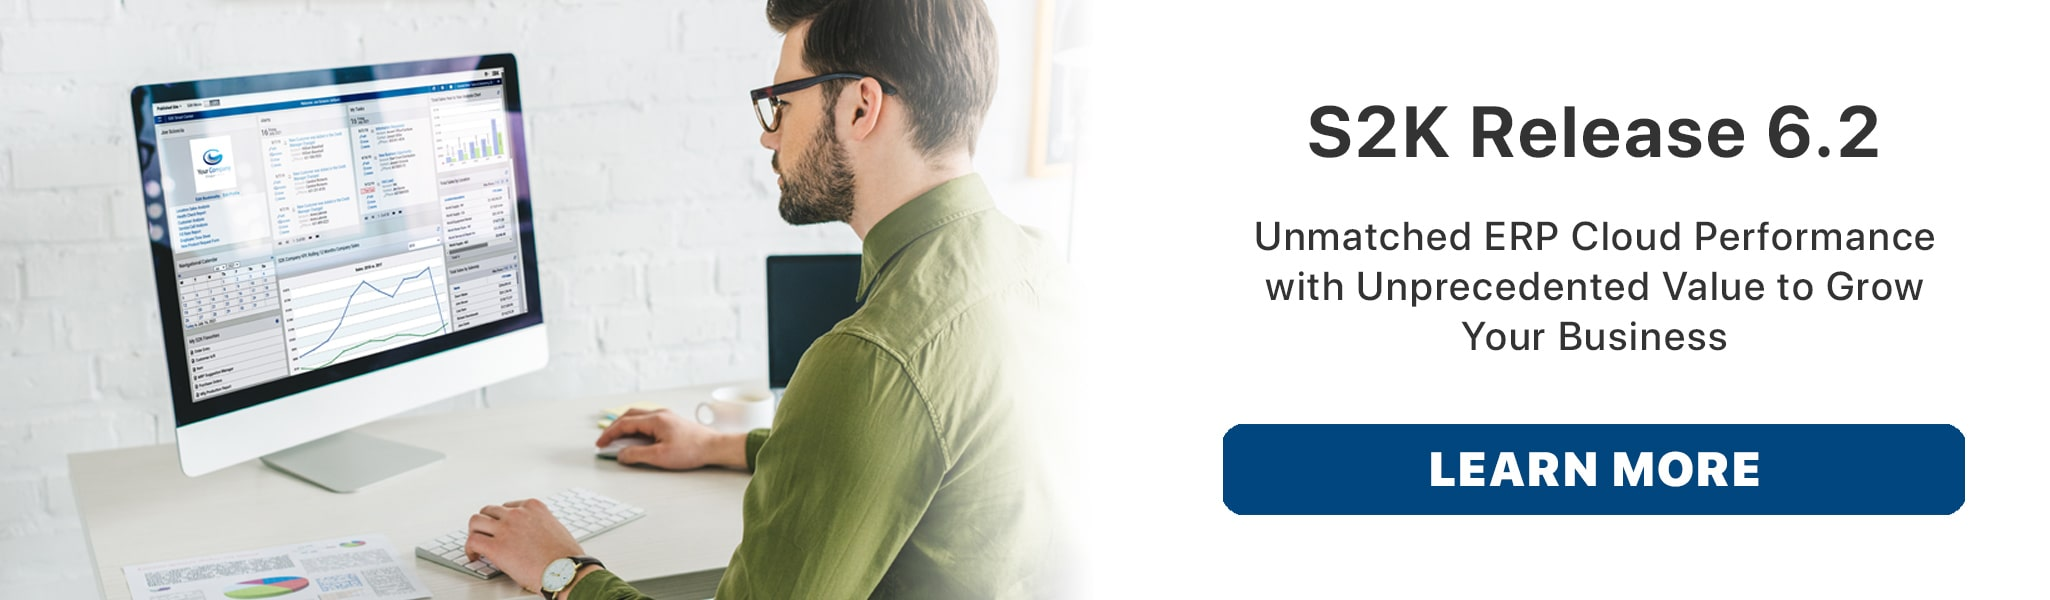 Release 6.2 | Next Generation ERP Solutions for Your Business